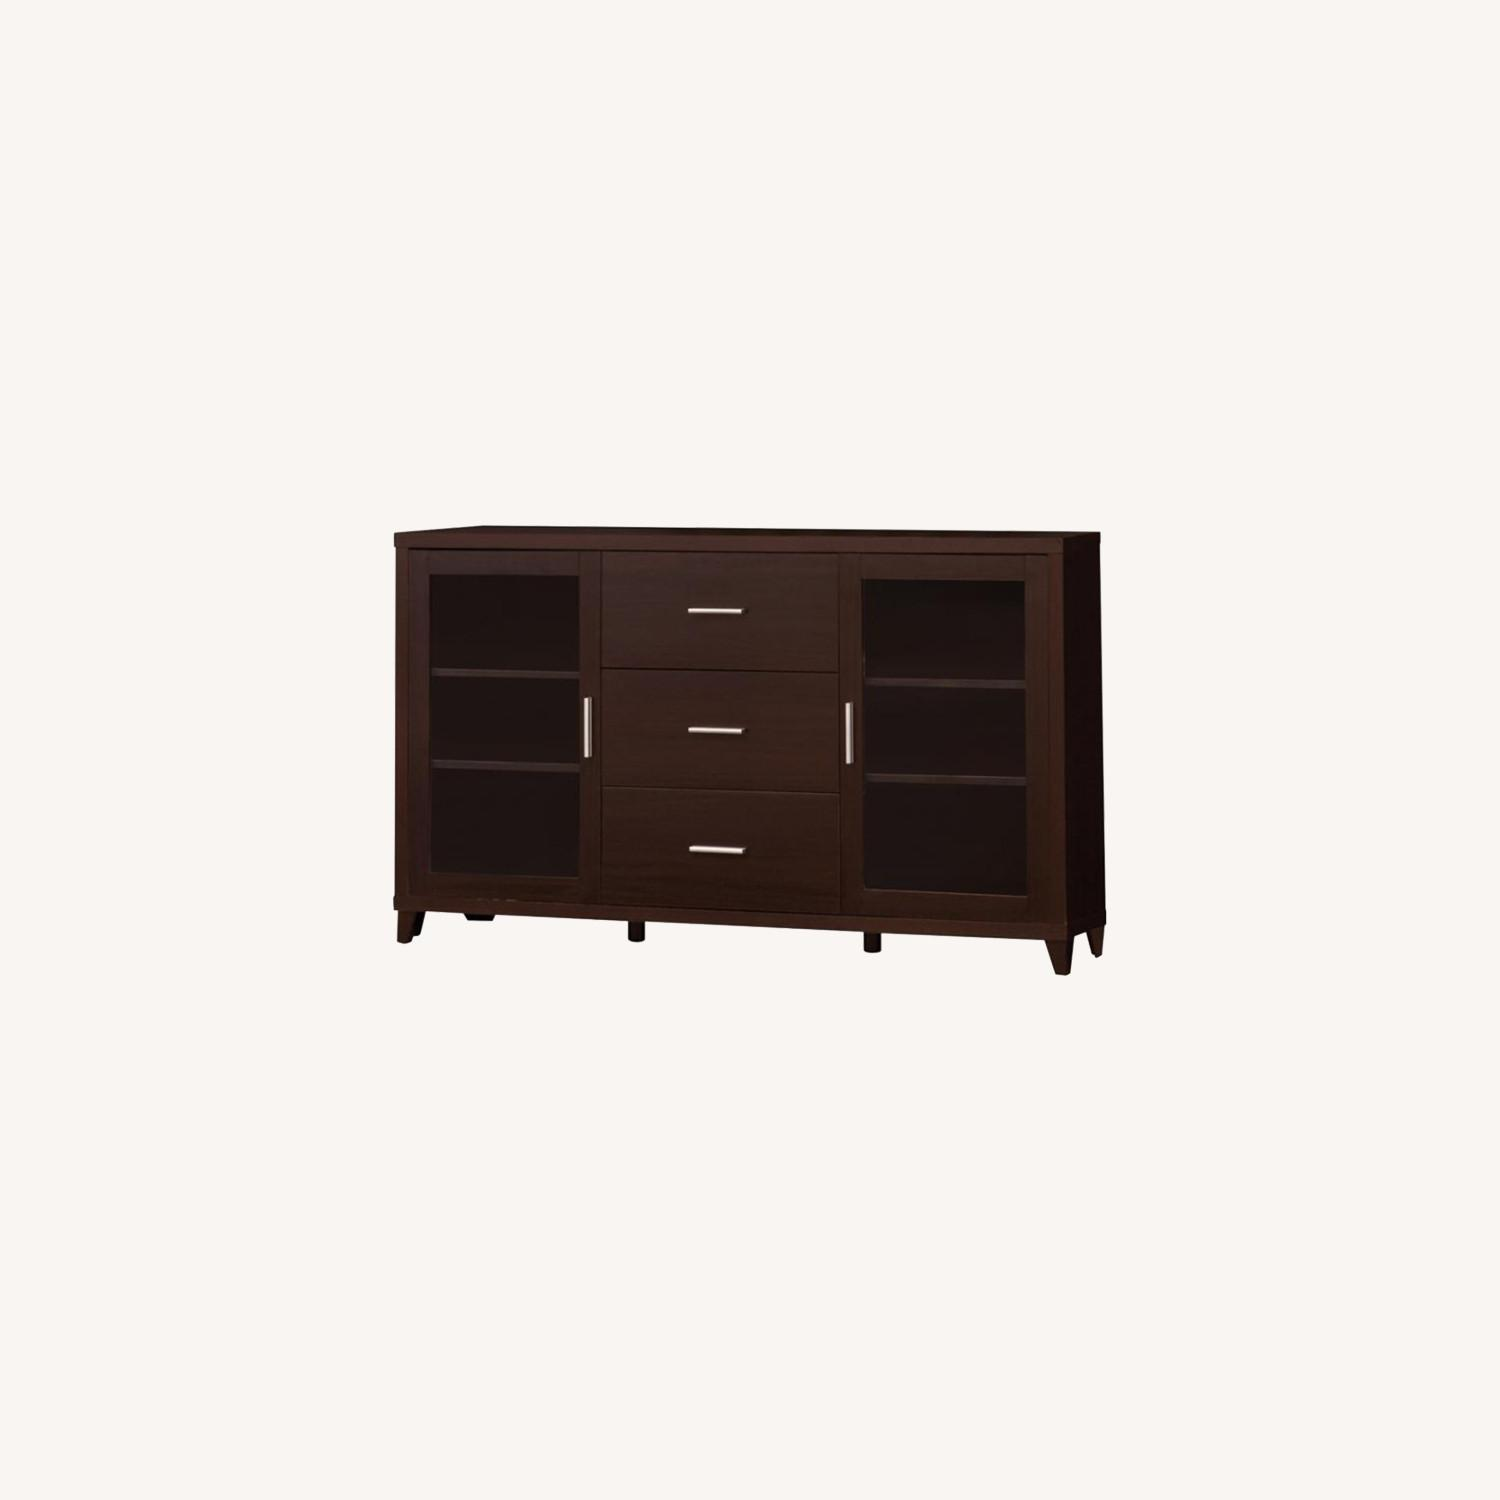 TV Console In Cappuccino Finish W/ Storage Drawers - image-4